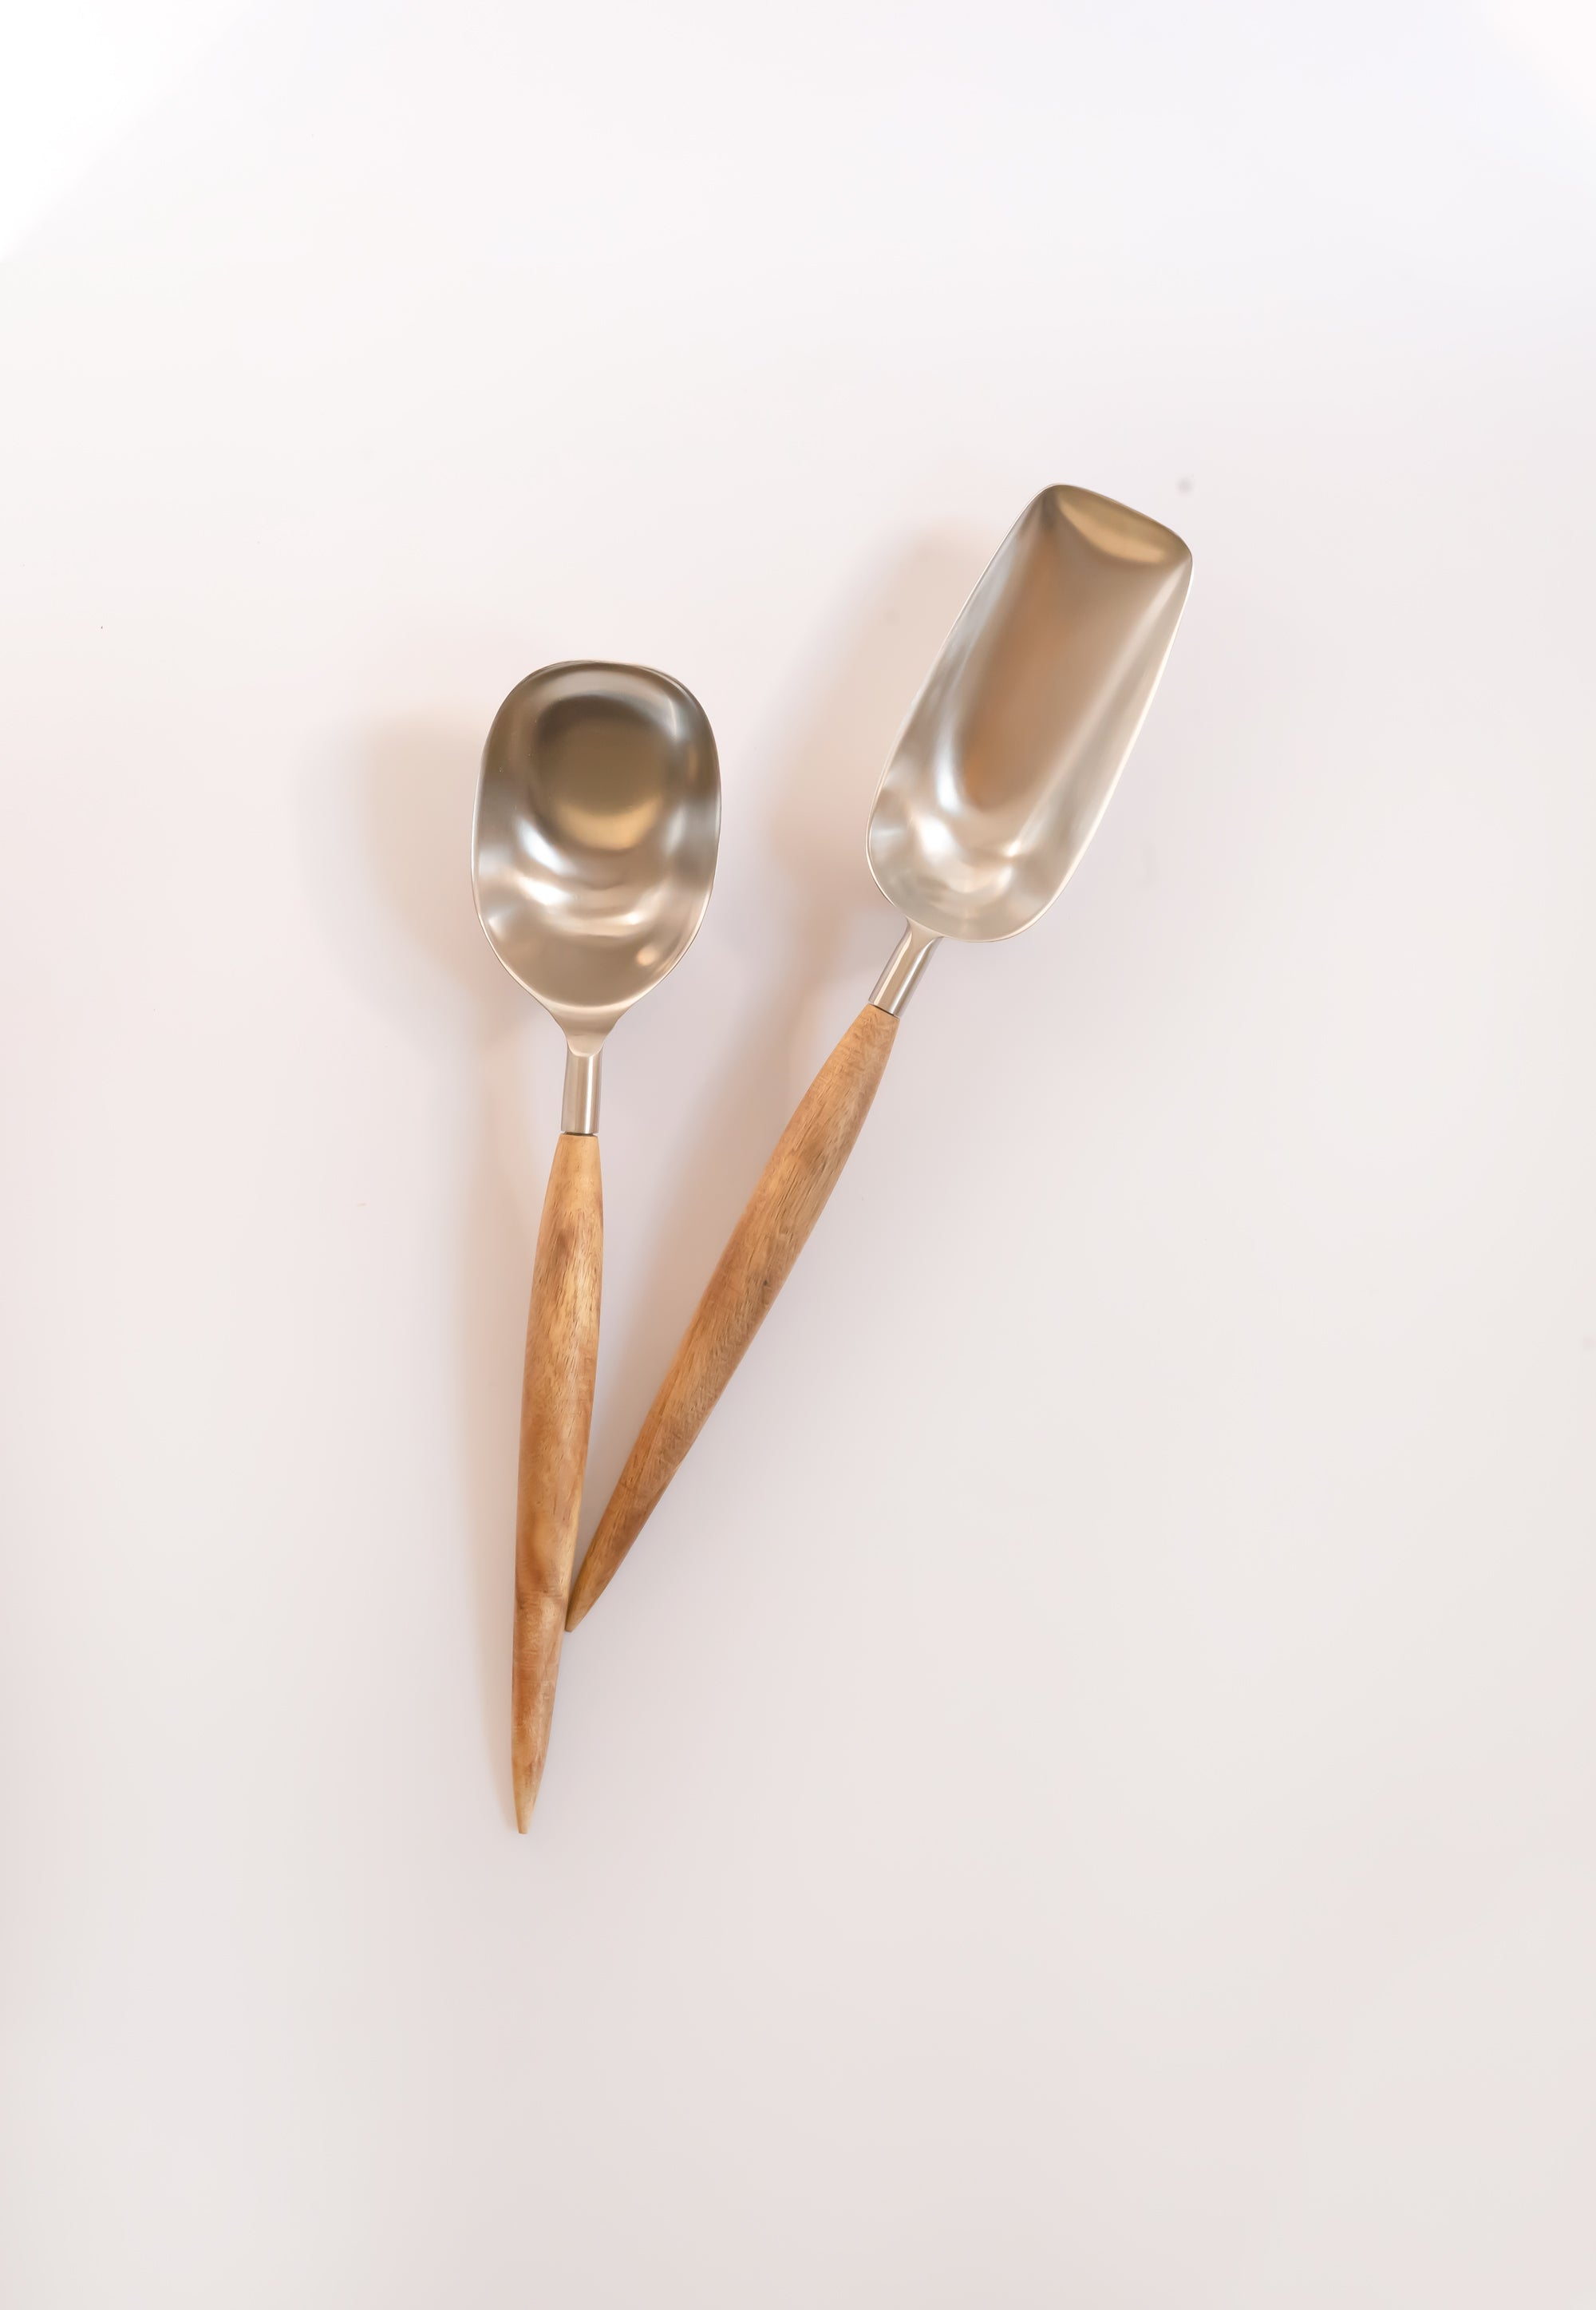 Stainless Steel Scoopers - Fleck